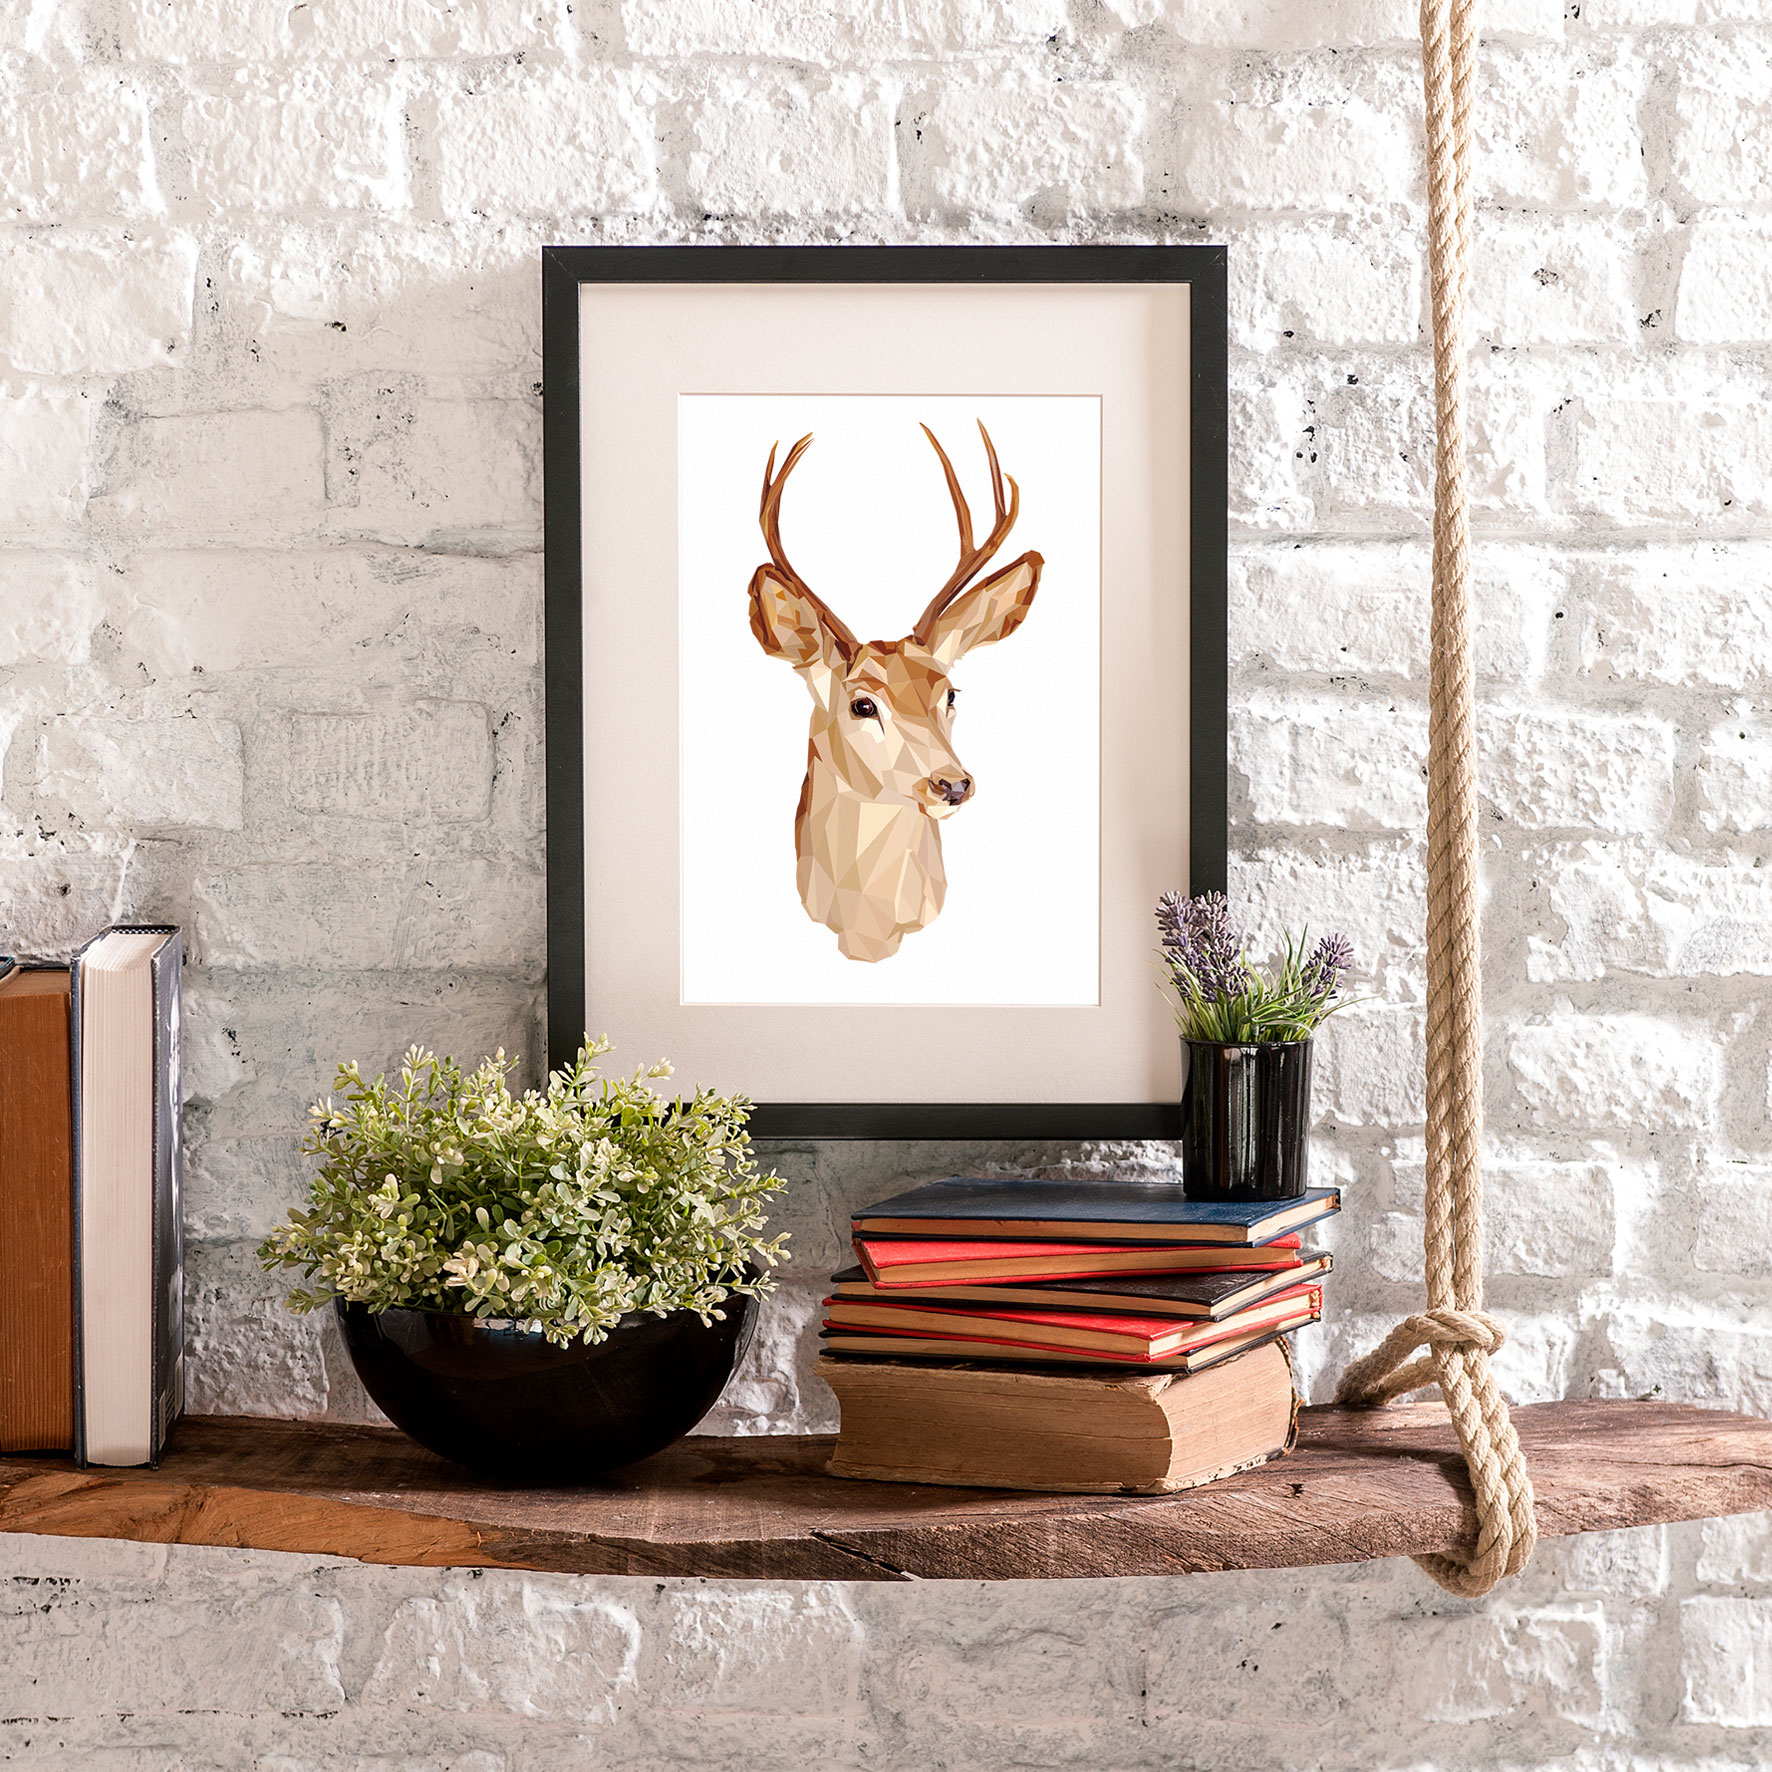 mood-shots-deer-shelf